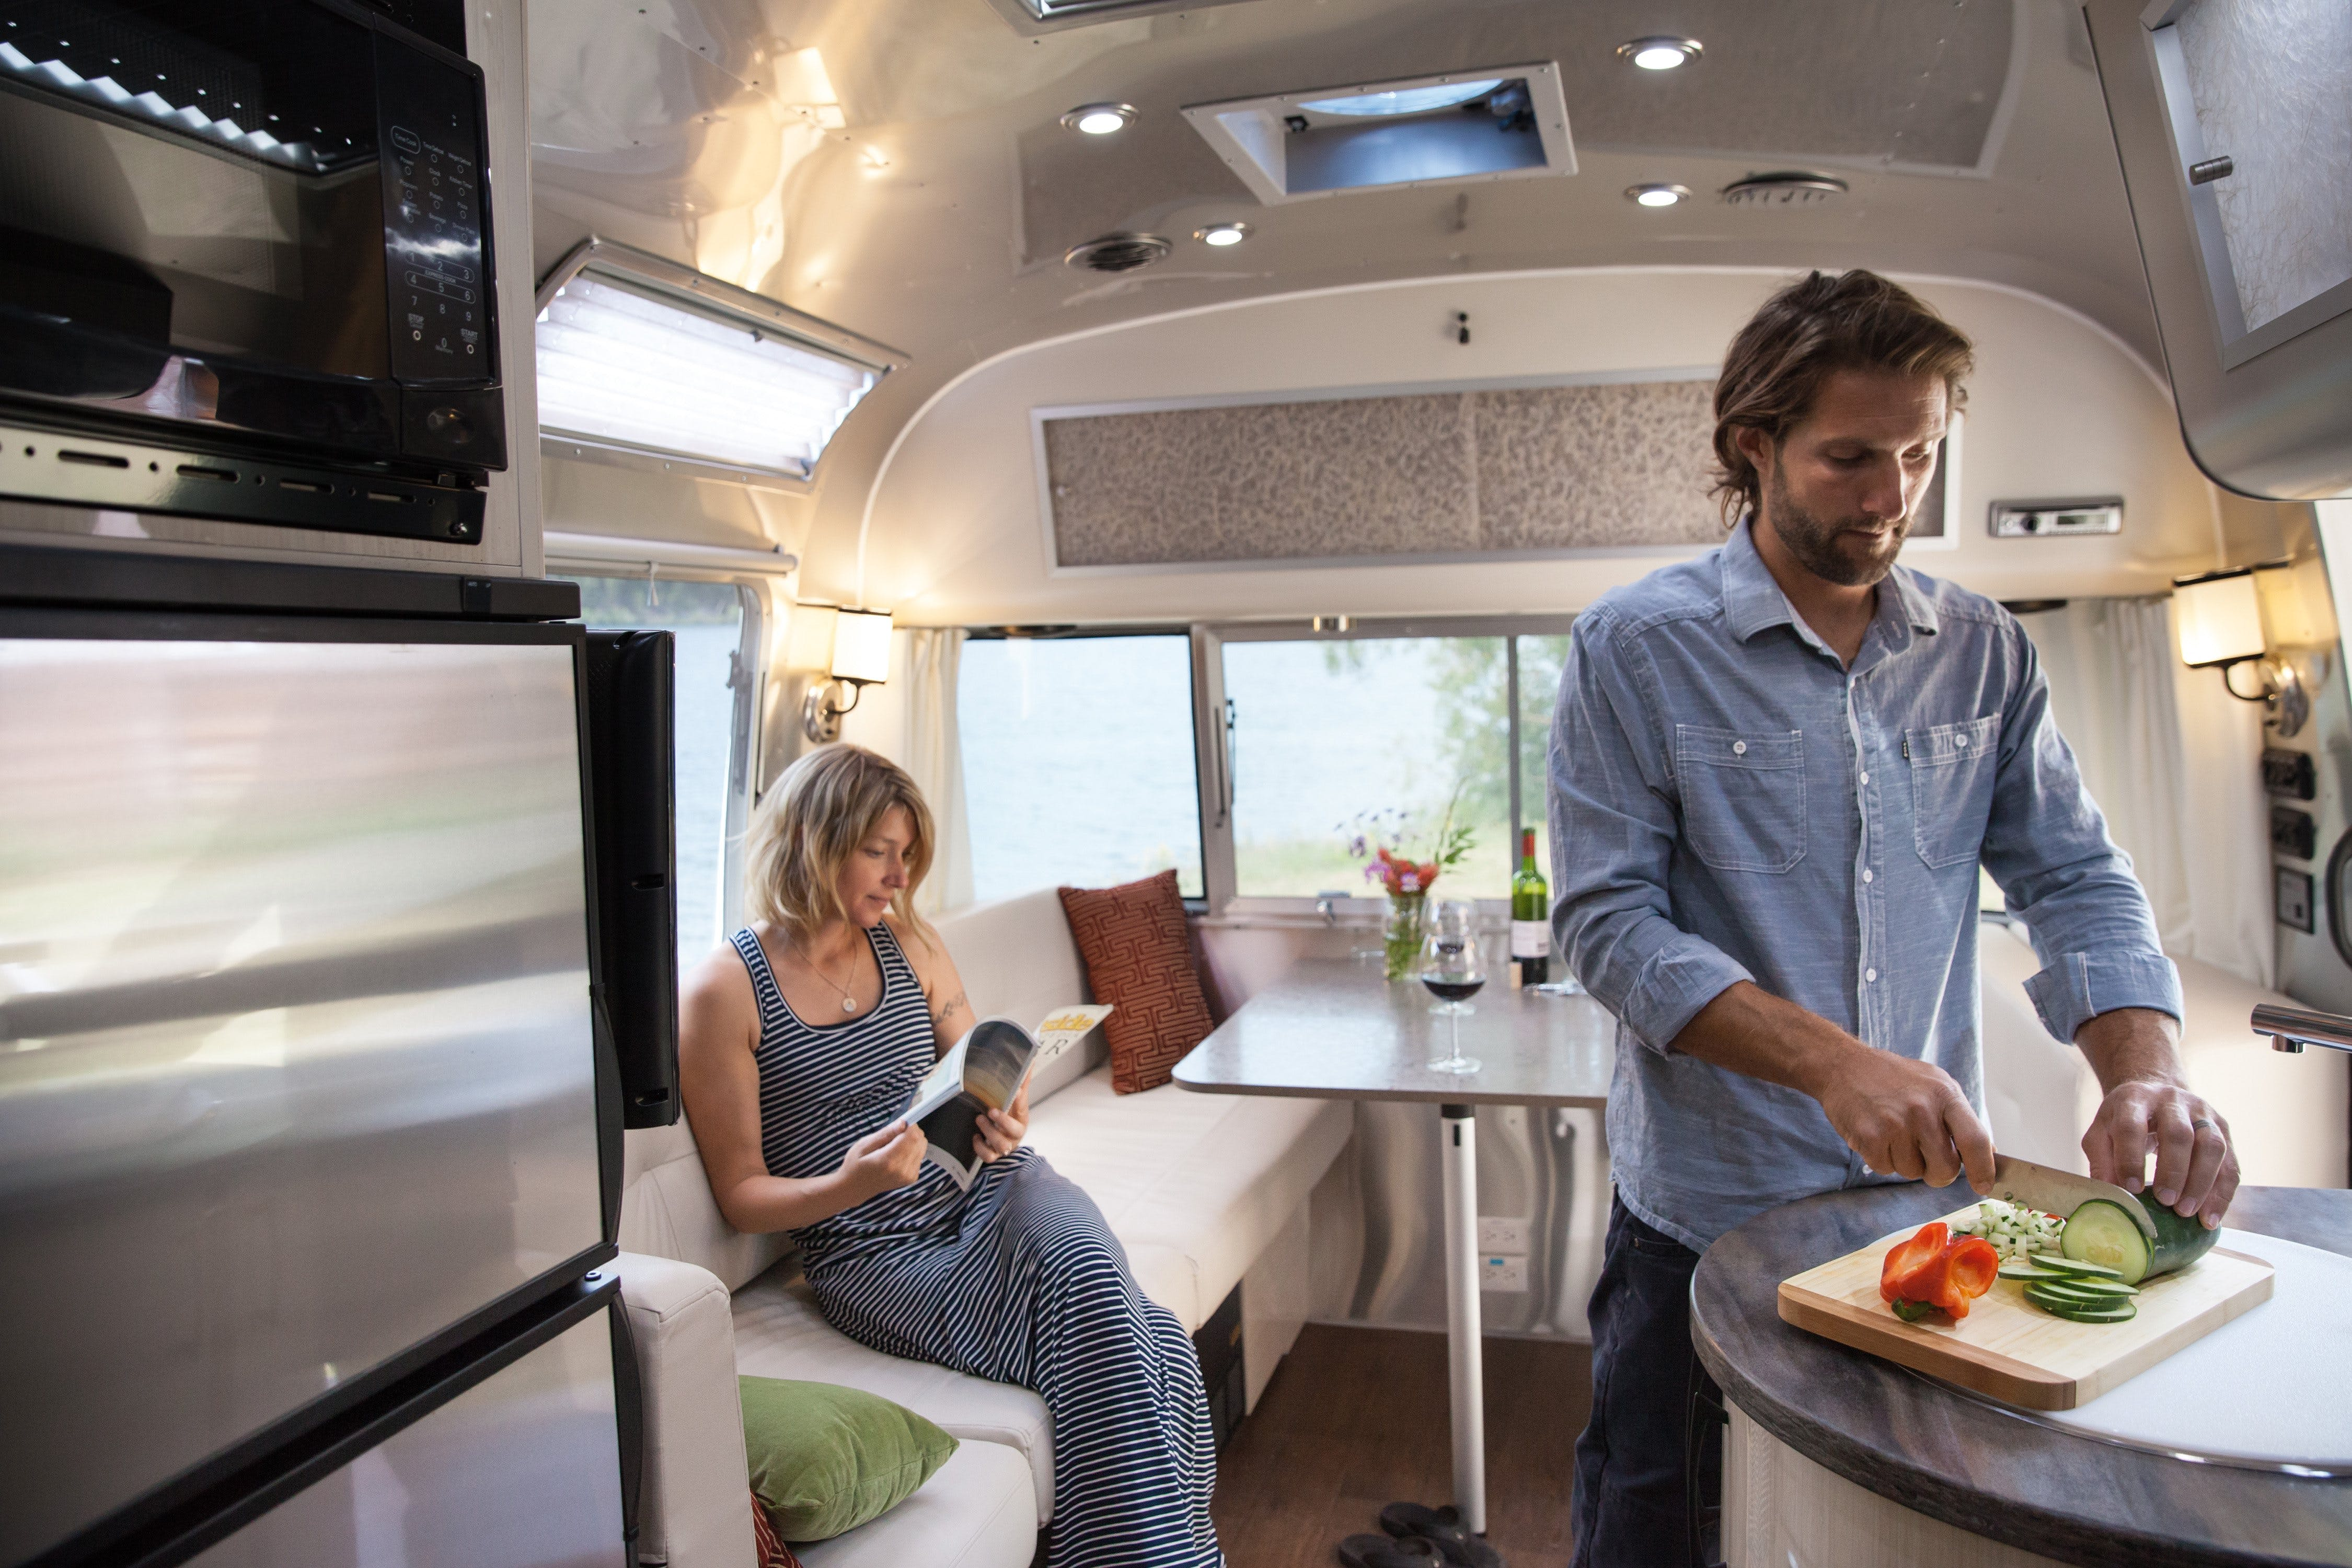 Couple Cooking in an Airstream